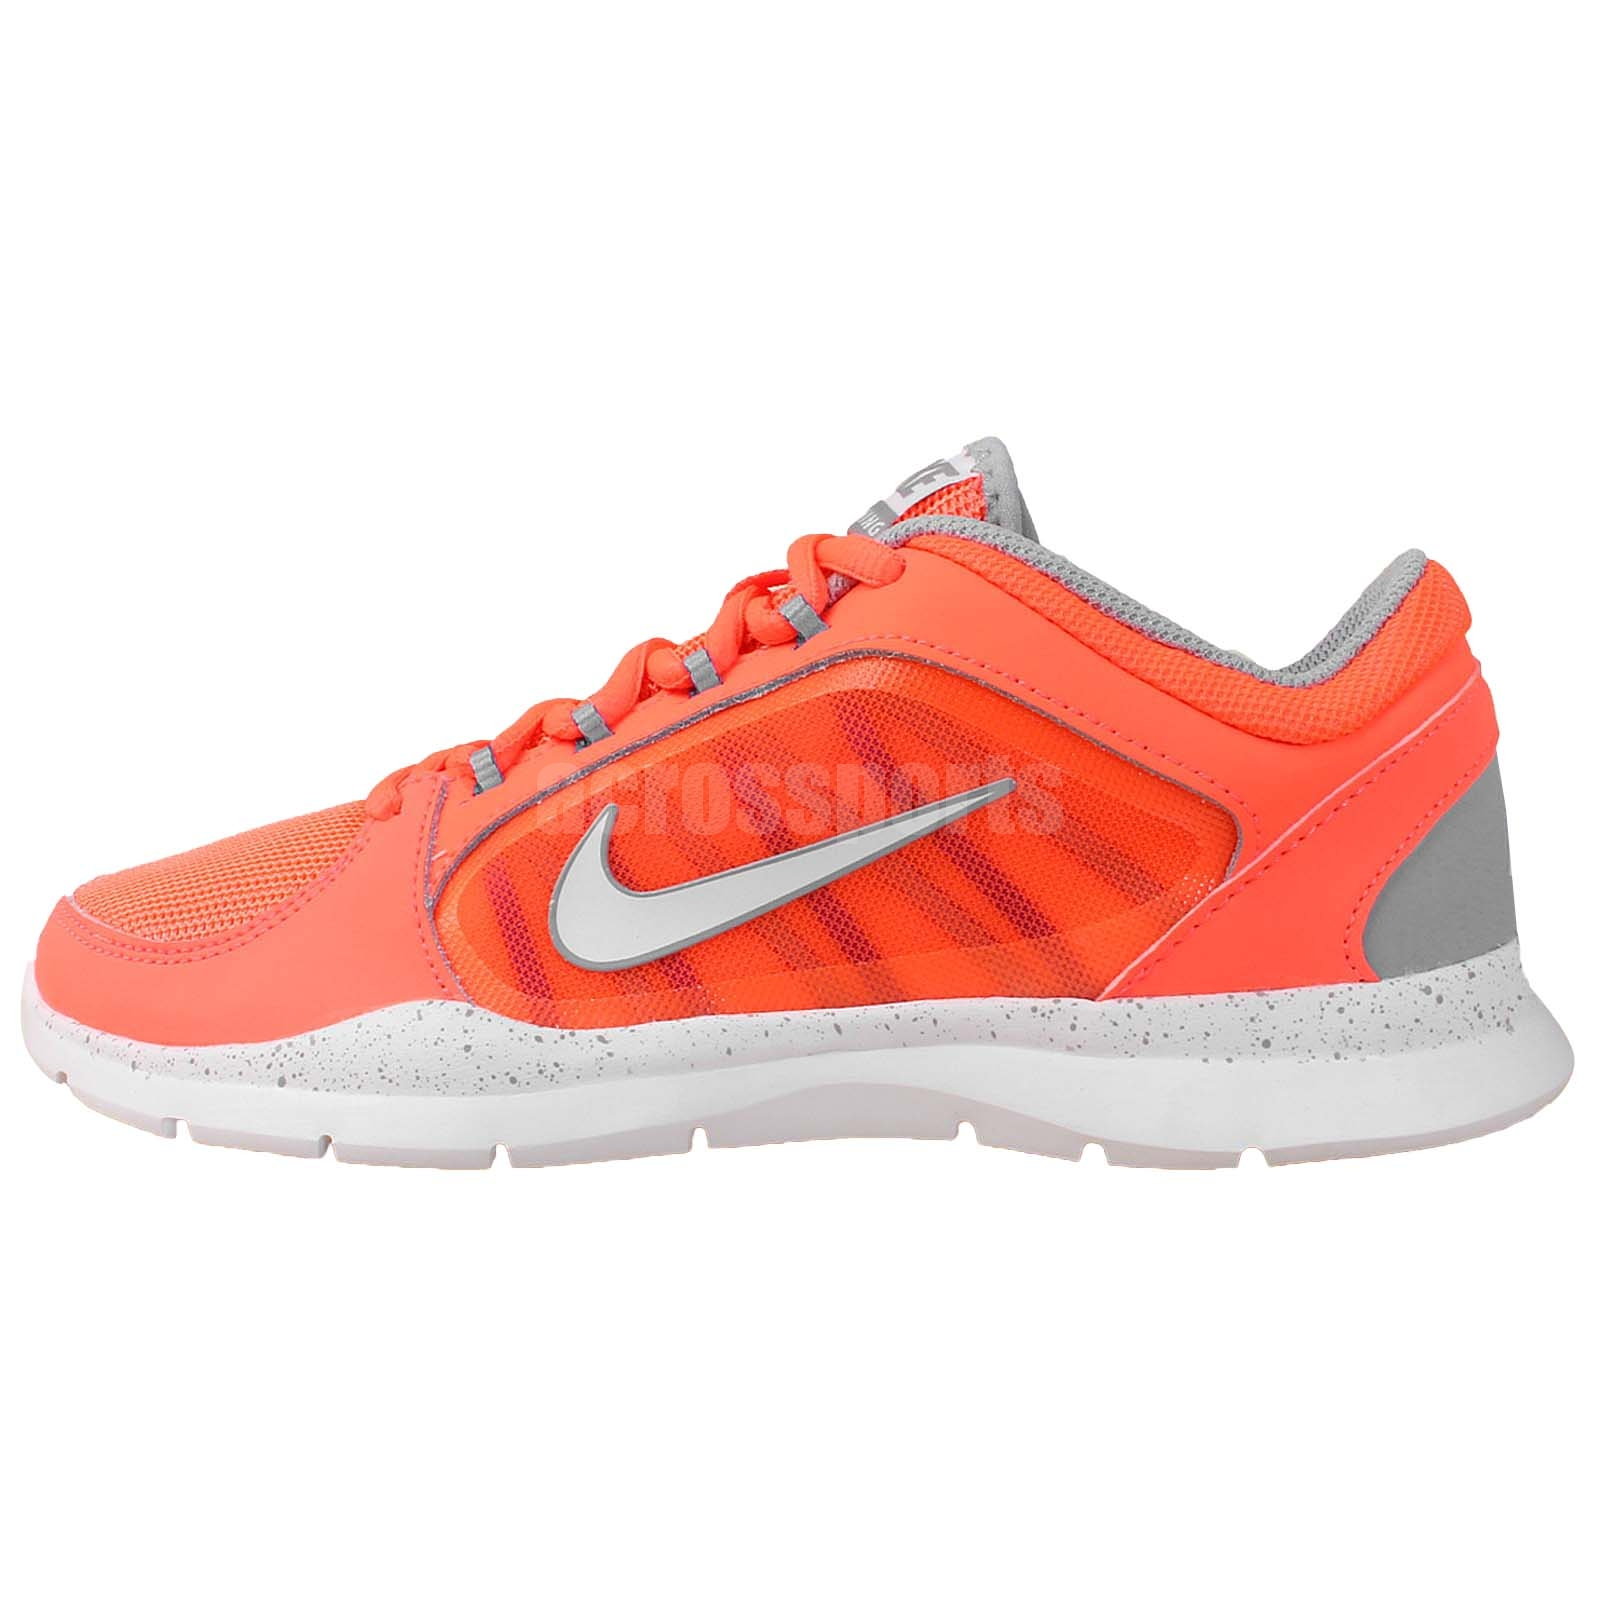 Amazing Nike Womens Flex Trainer 3 Training Shoes Made From Quality